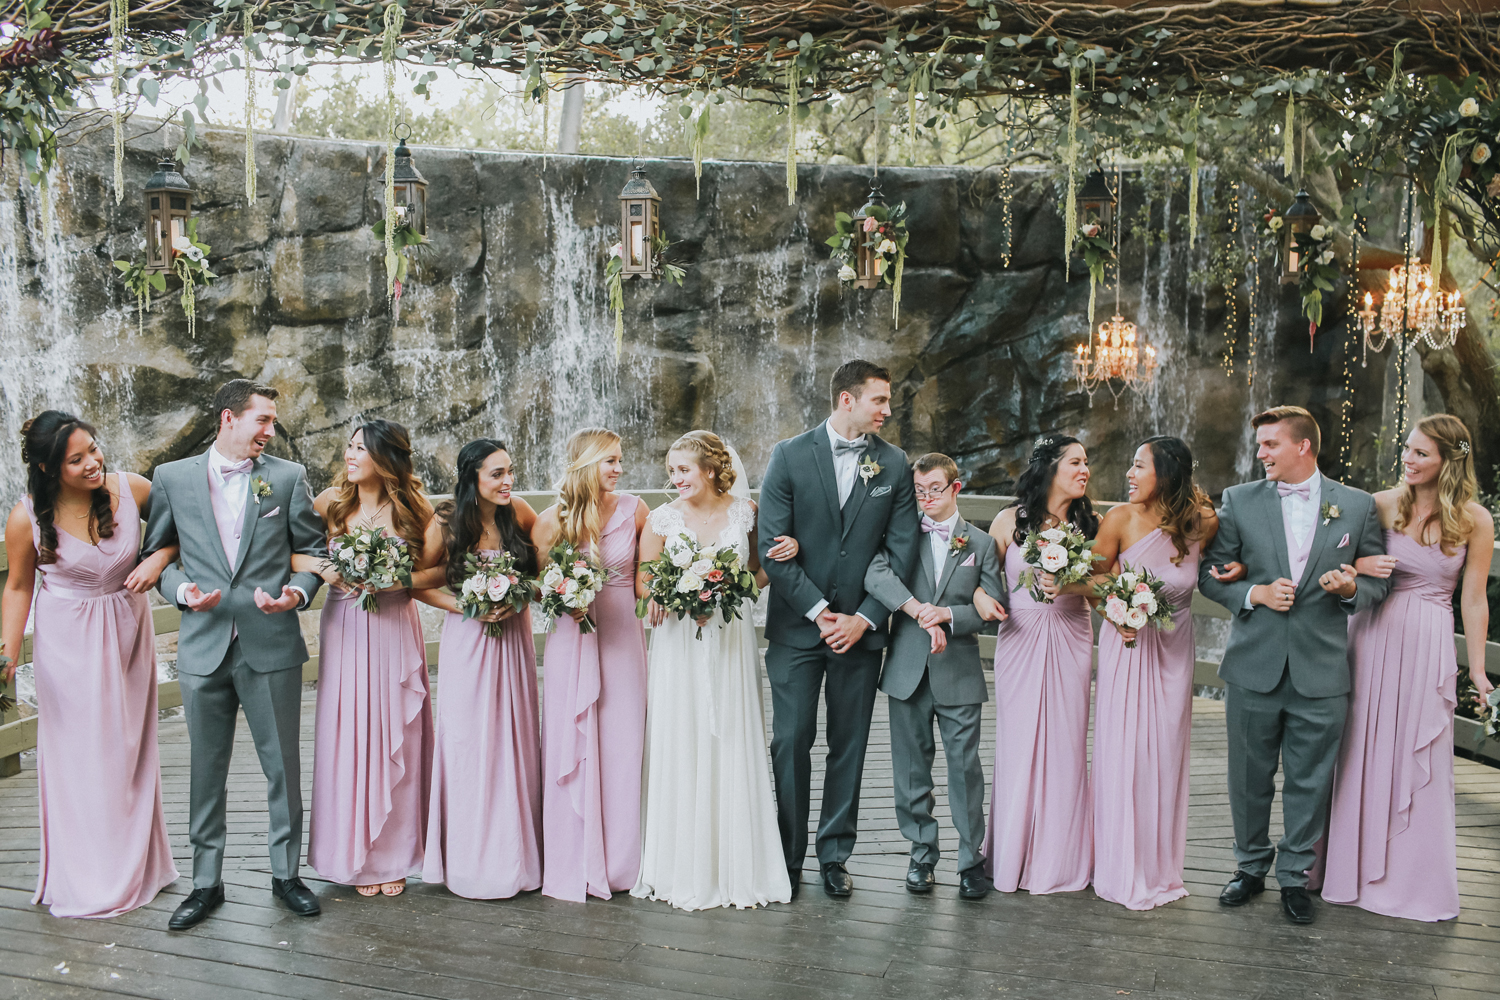 Lucky Day Events Co. // Forestry Films Photography and Videography // Dusty Rose Malibu Wedding // Calamigos Ranch // Moody Wedding Photography